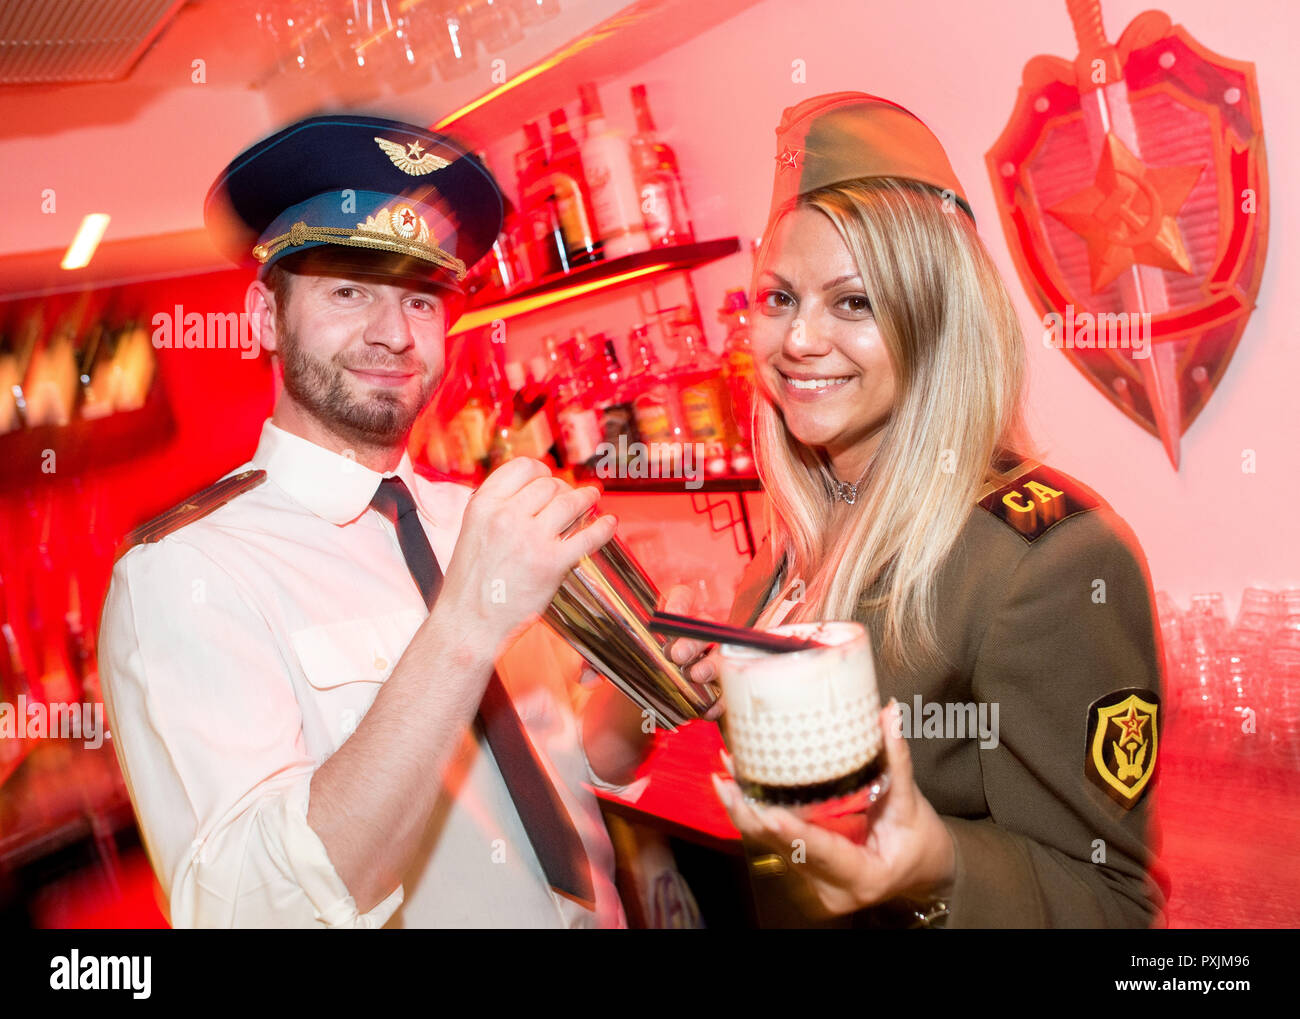 Hanover, Germany. 07th Apr, 2018. Bella and Anton stand behind the counter of the KGB bar in historical KGB uniforms. With many Soviet relics, the bar in the city centre of Hanover is reminiscent of the former USSR. Credit: Hauke-Christian Dittrich/dpa/Alamy Live News - Stock Image